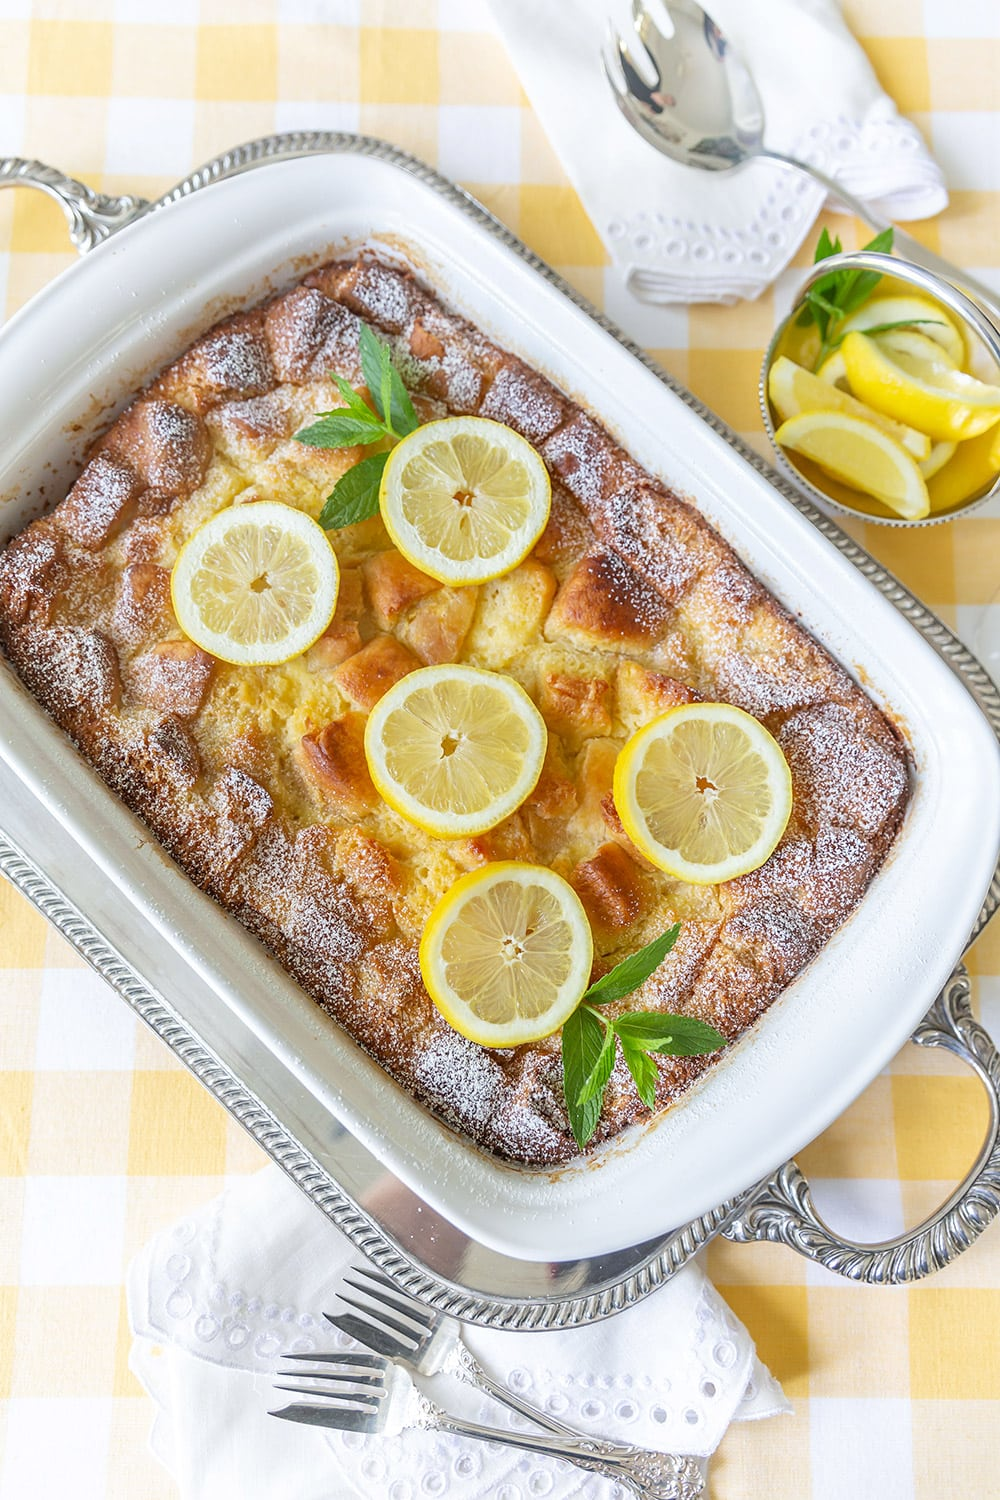 Sister Schubert's Lemon Bread Pudding